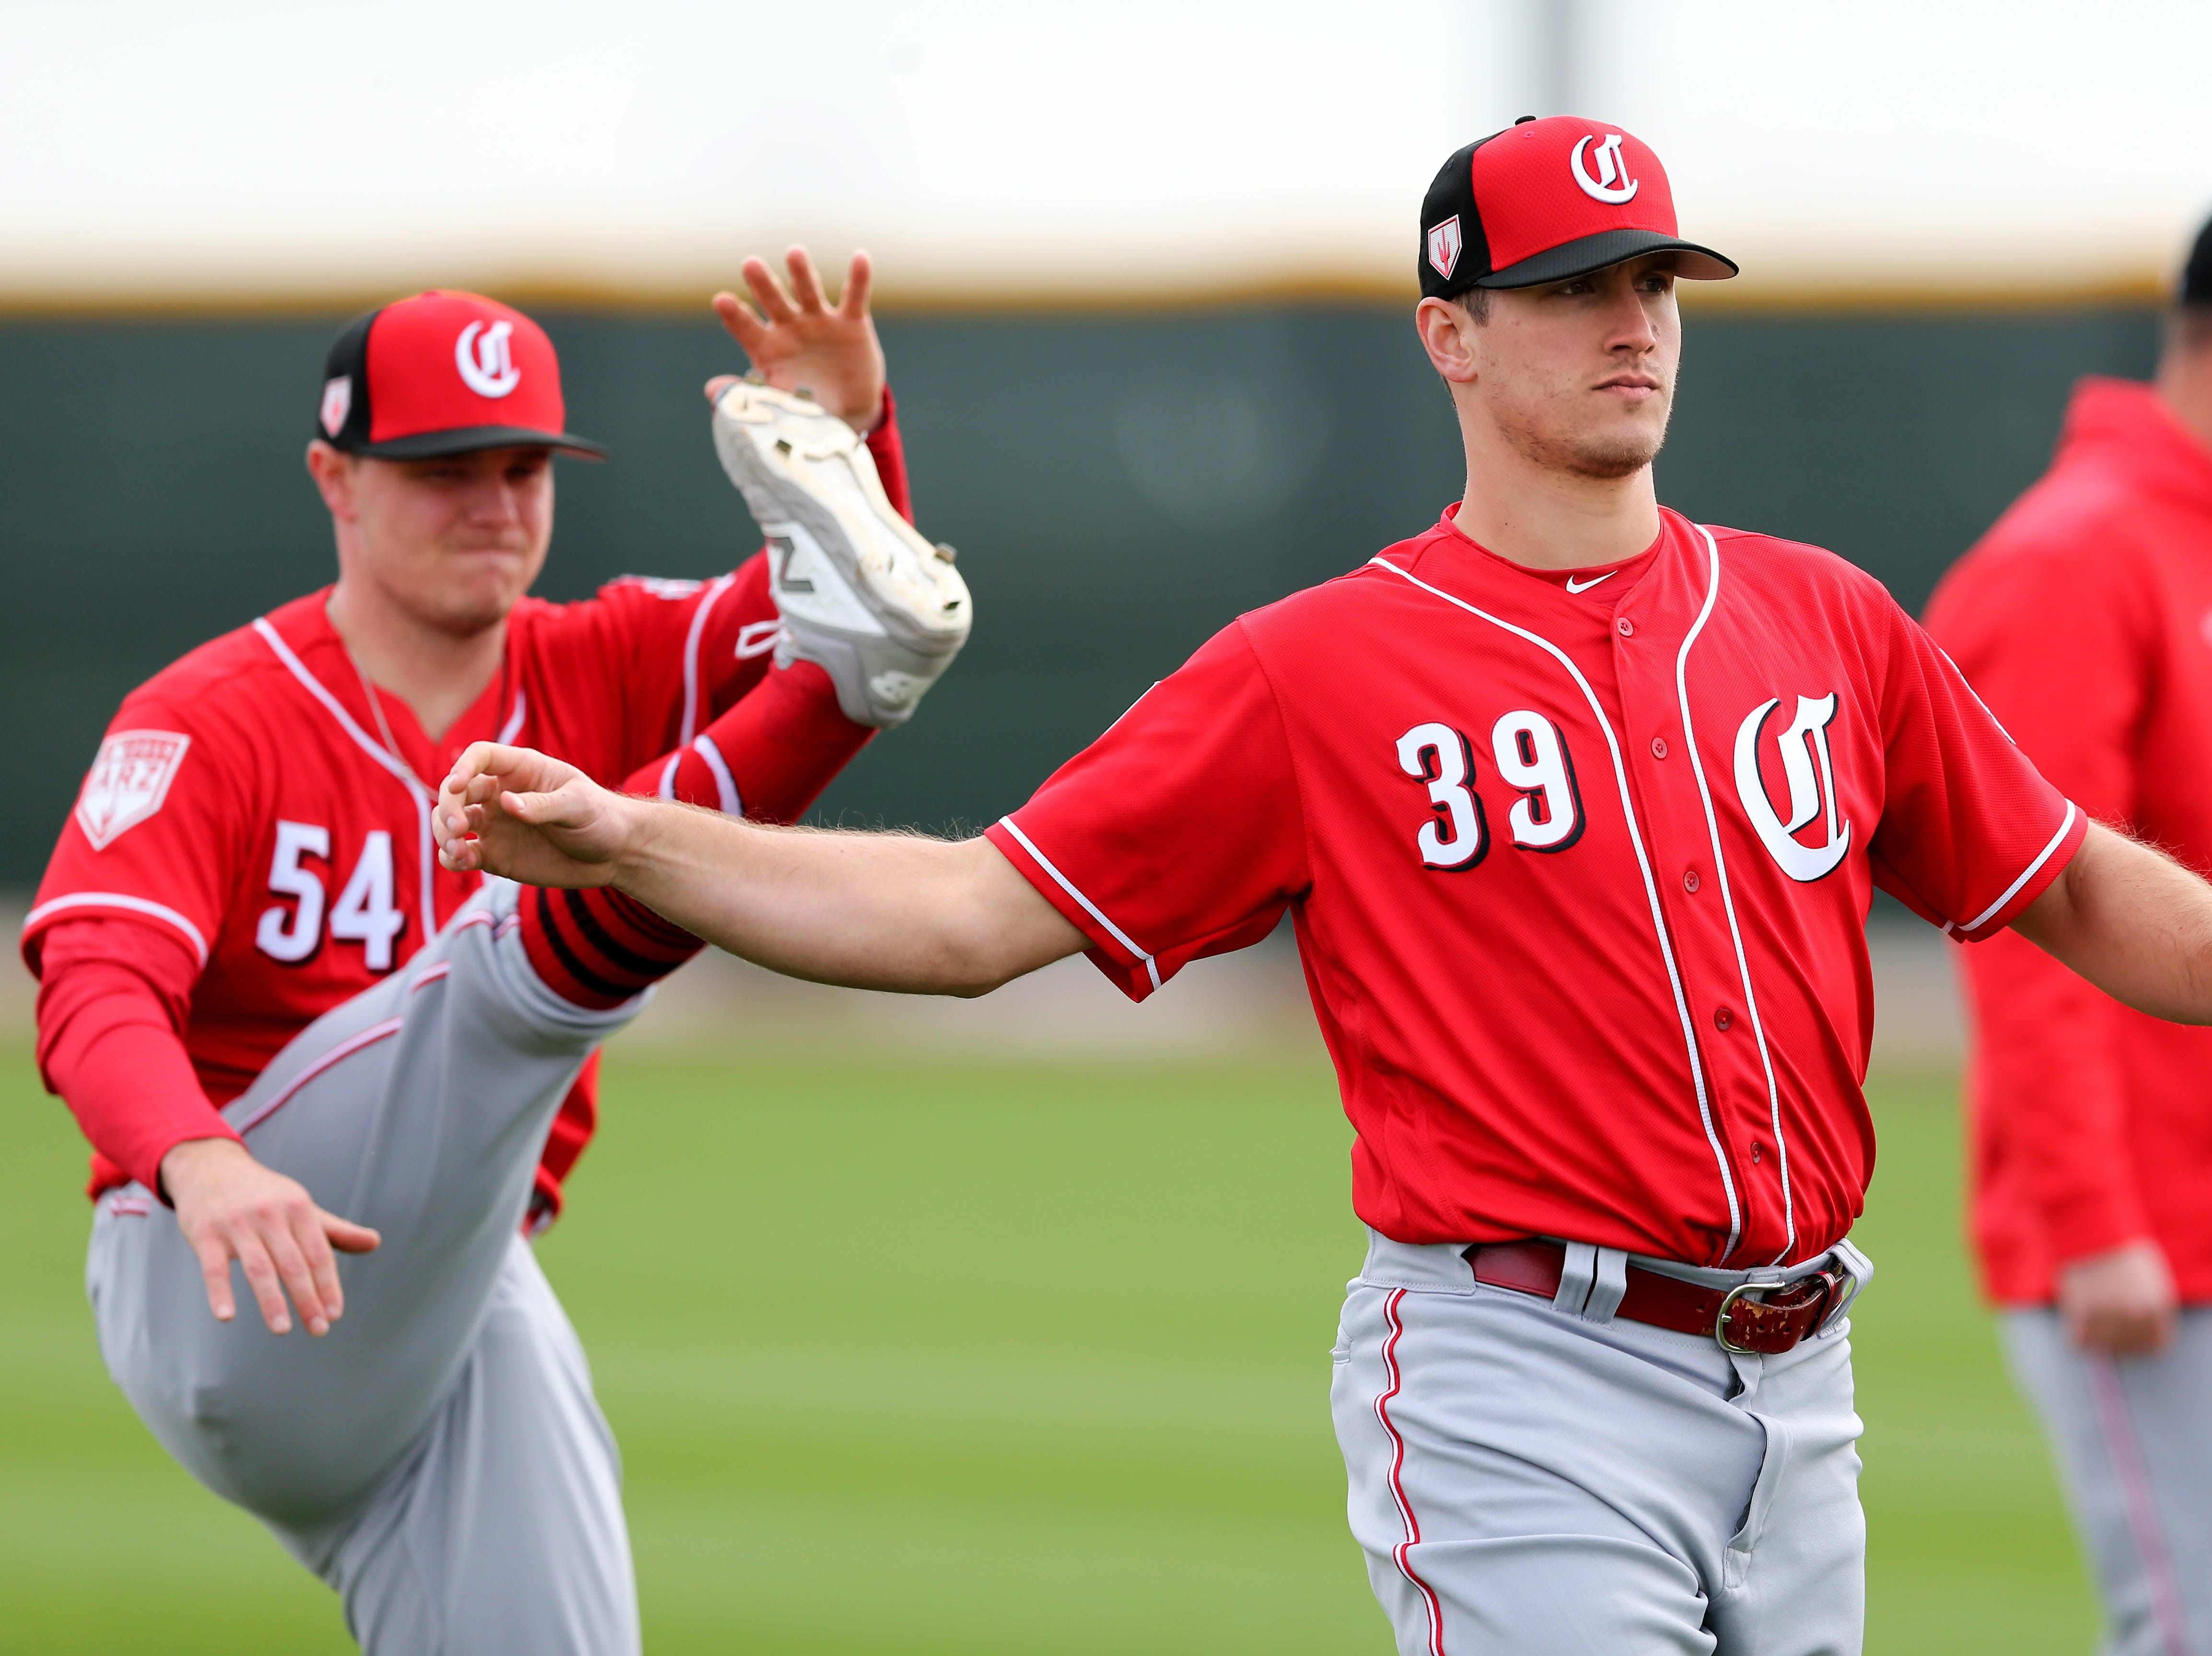 Cincinnati Reds pitchers Sonny Gray (54), left, and Lucas Sims (39), right, stretch, Wednesday, Feb. 13, 2019, at the Cincinnati Reds spring training facility in Goodyear, Arizona.